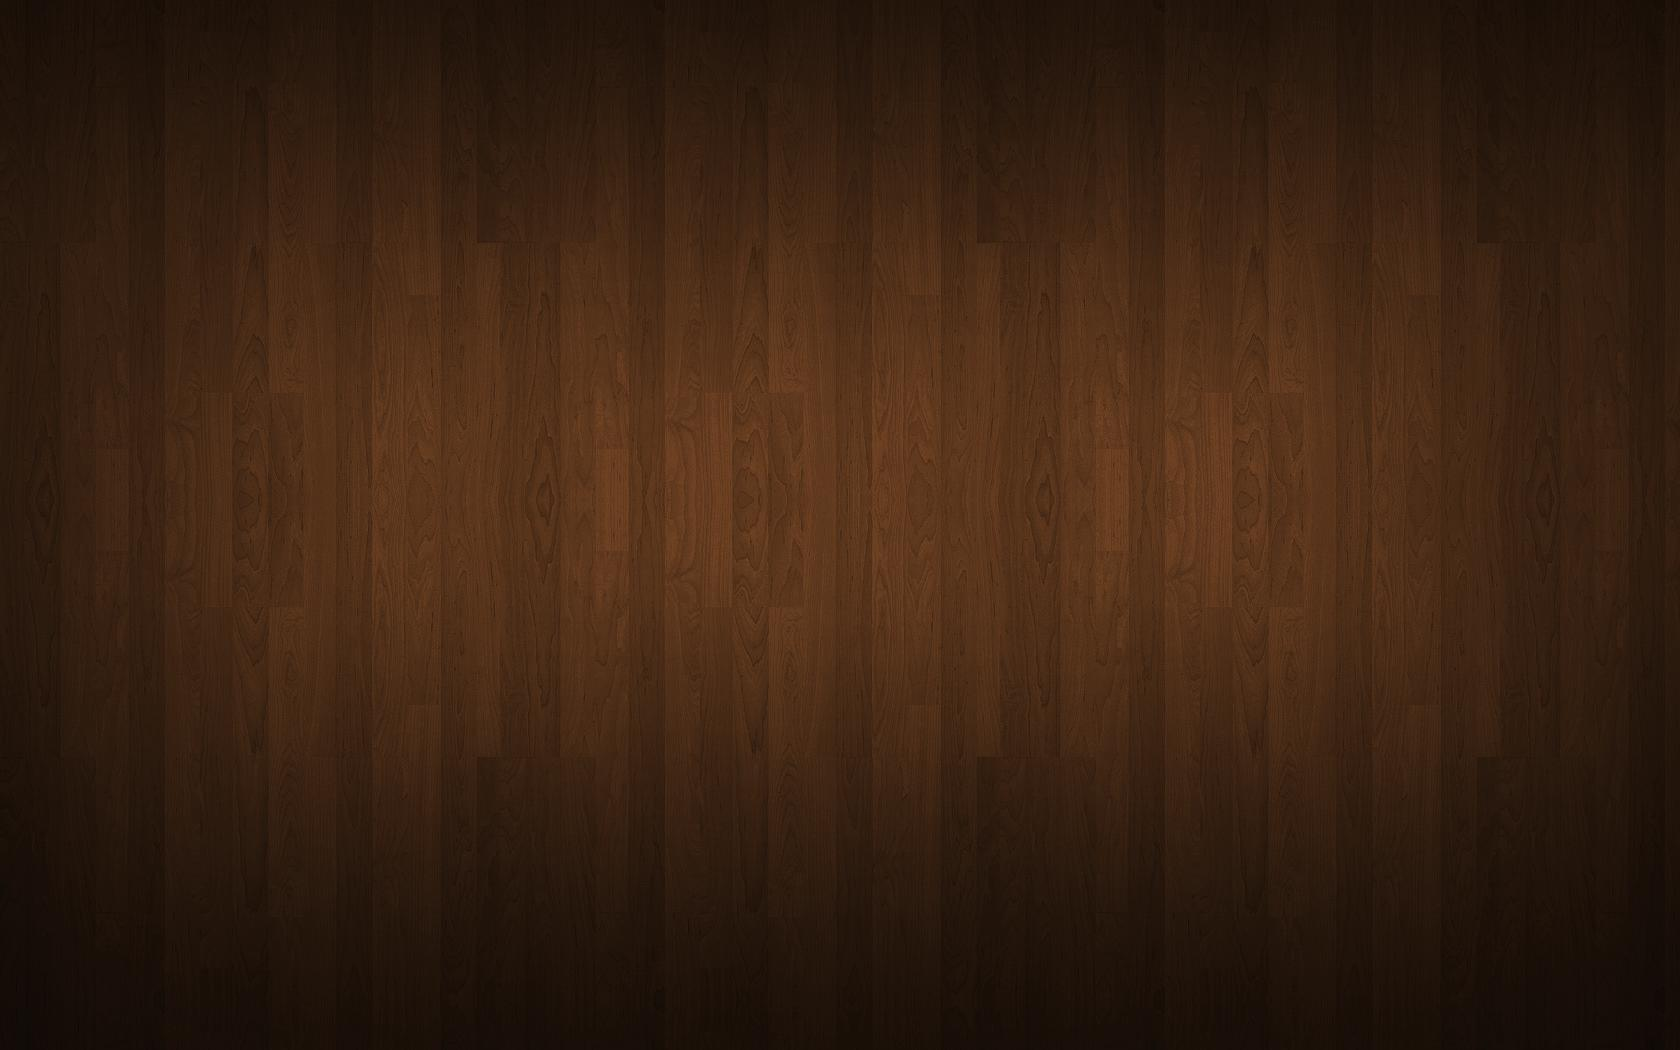 Wood Desktop Background 10 Wooden Desktop